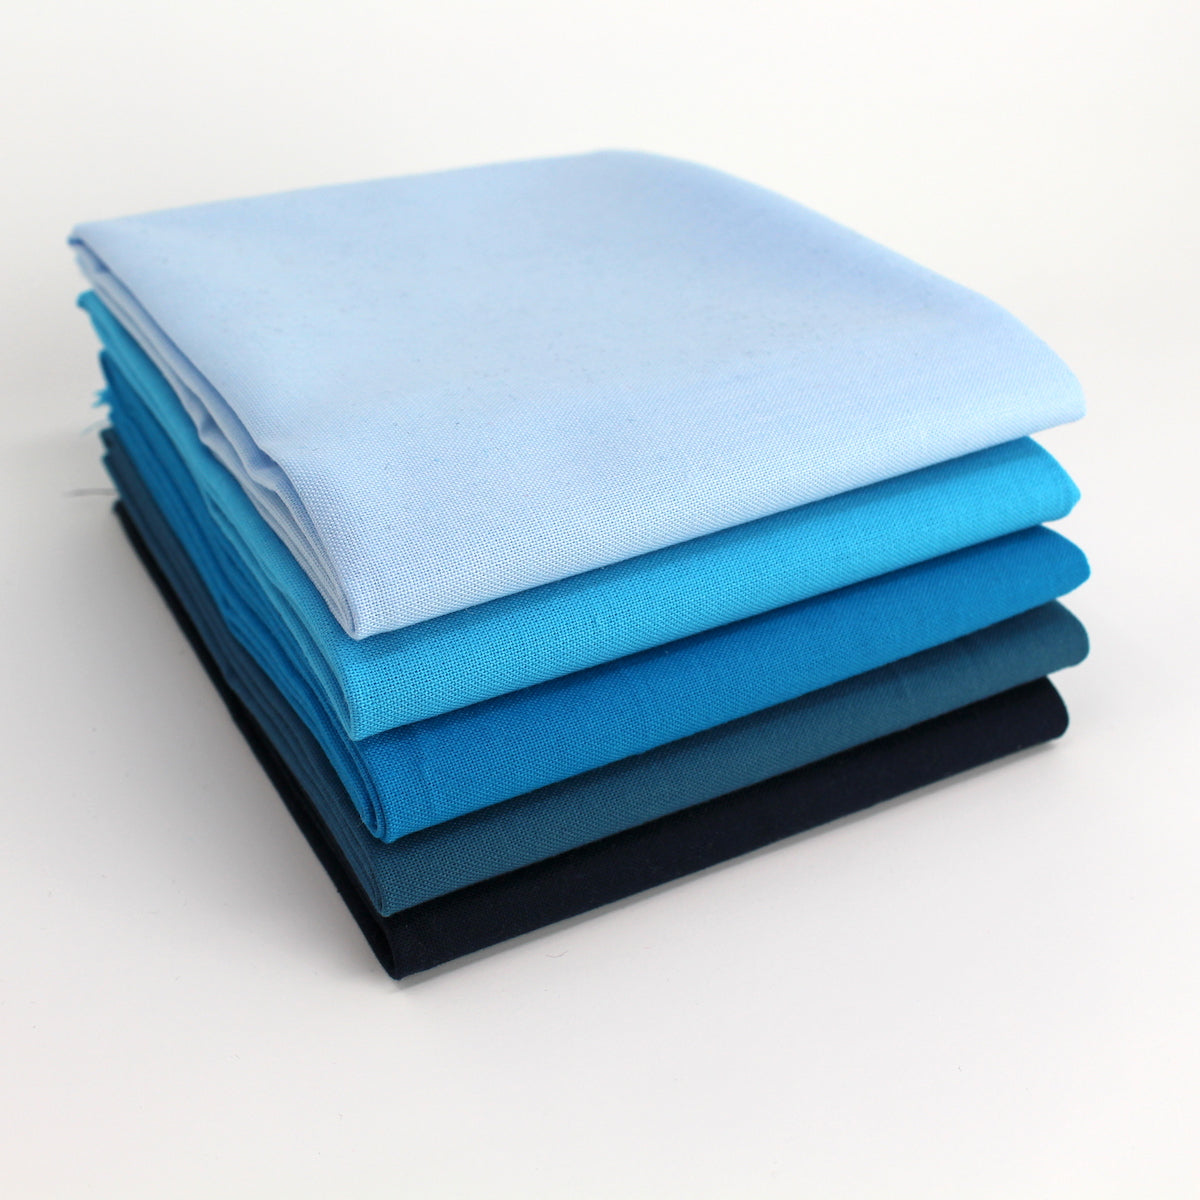 Cyan 5 Fat Quarter Bundle - Kona Cotton